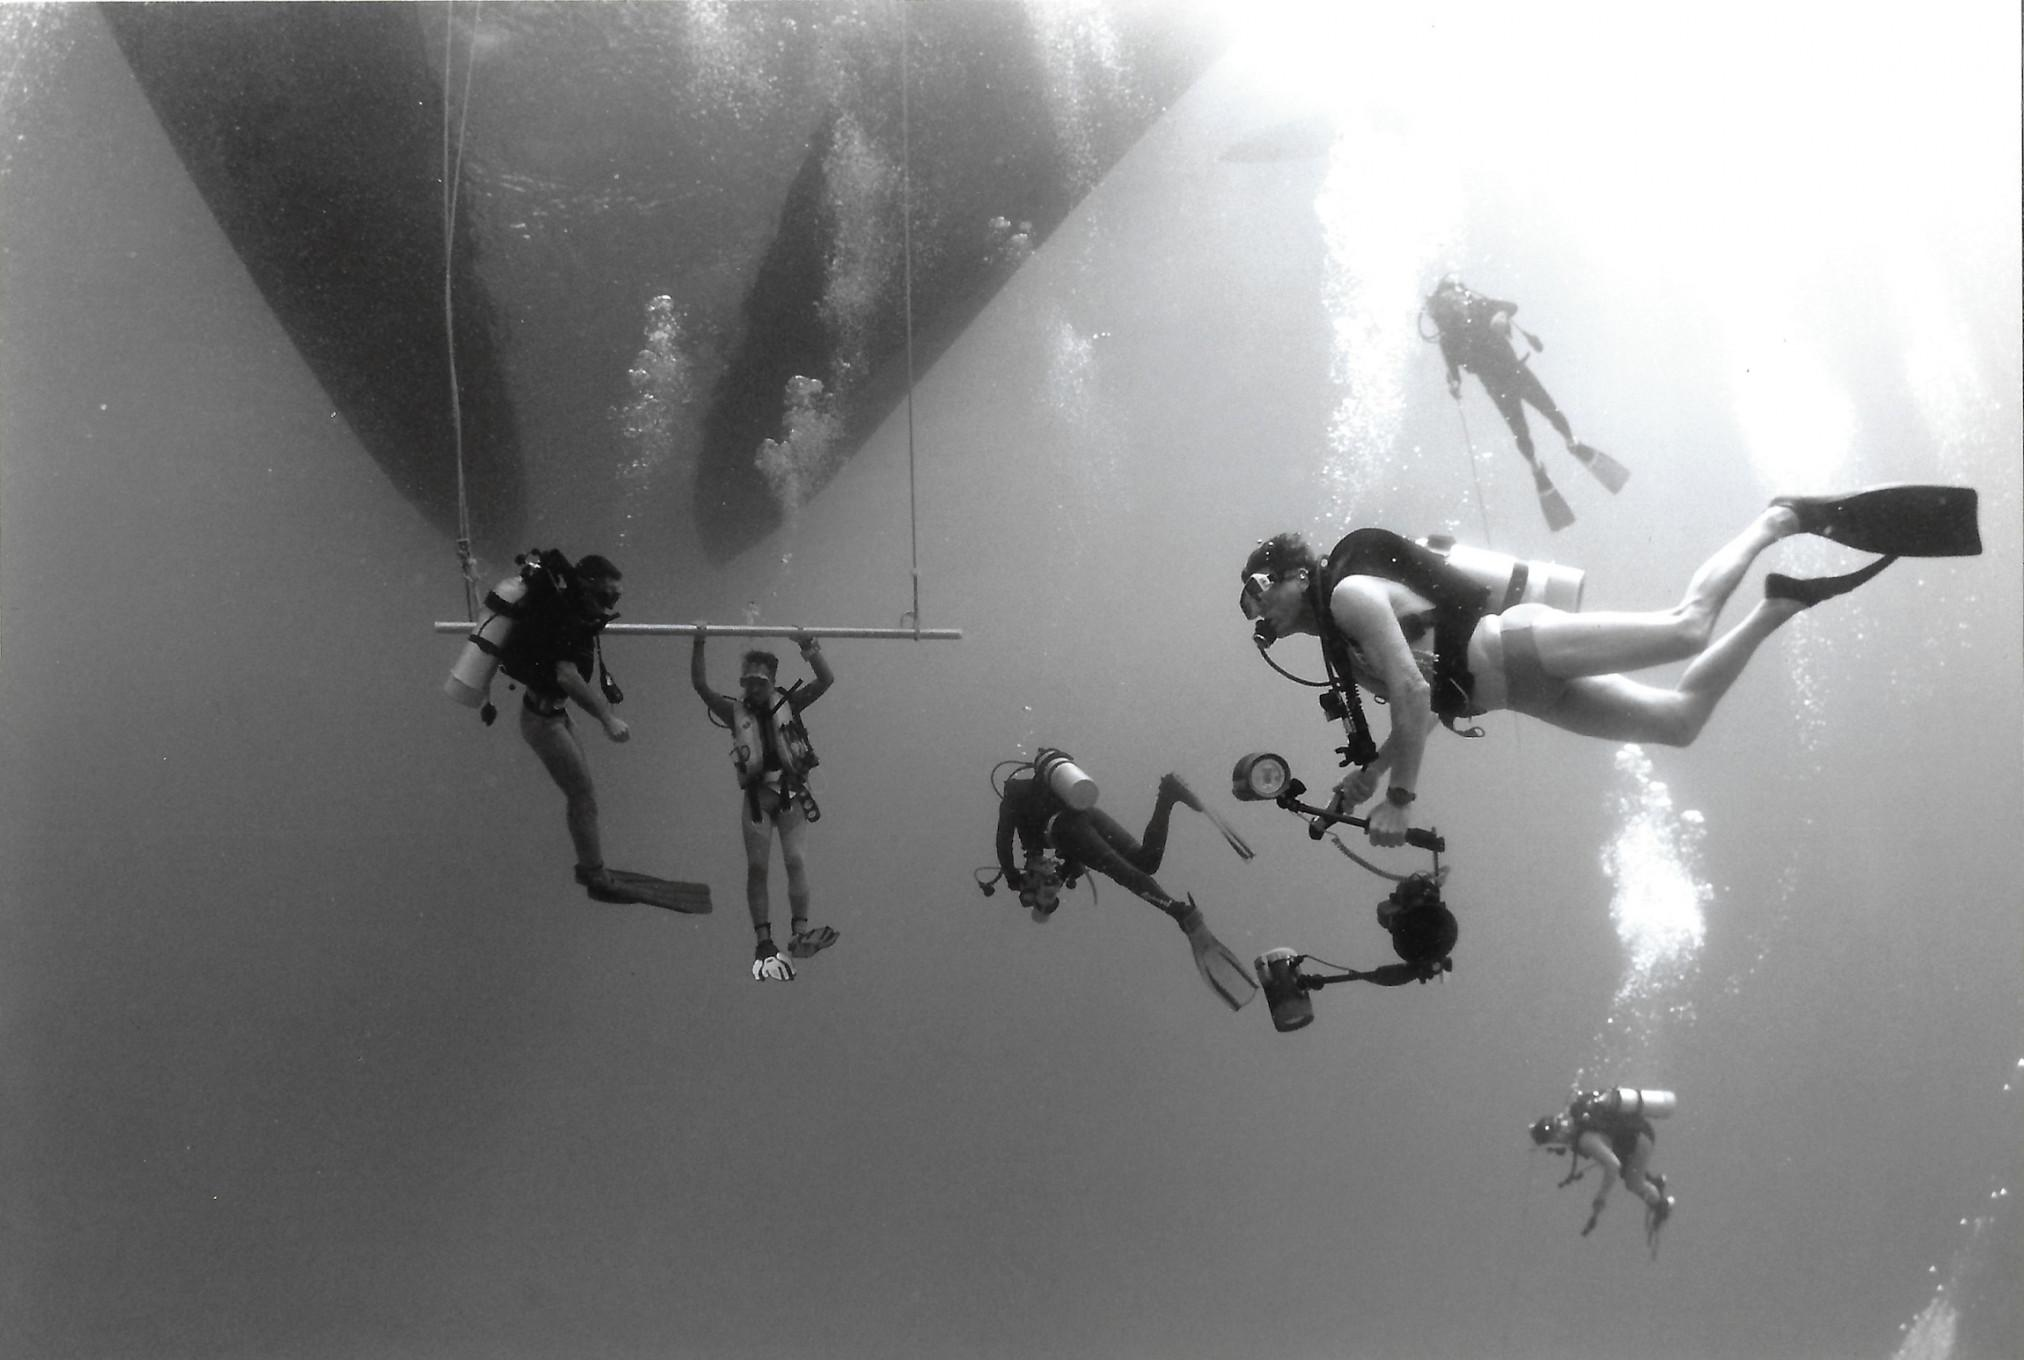 Mike Ball (Front Right) Diving in the Good old days